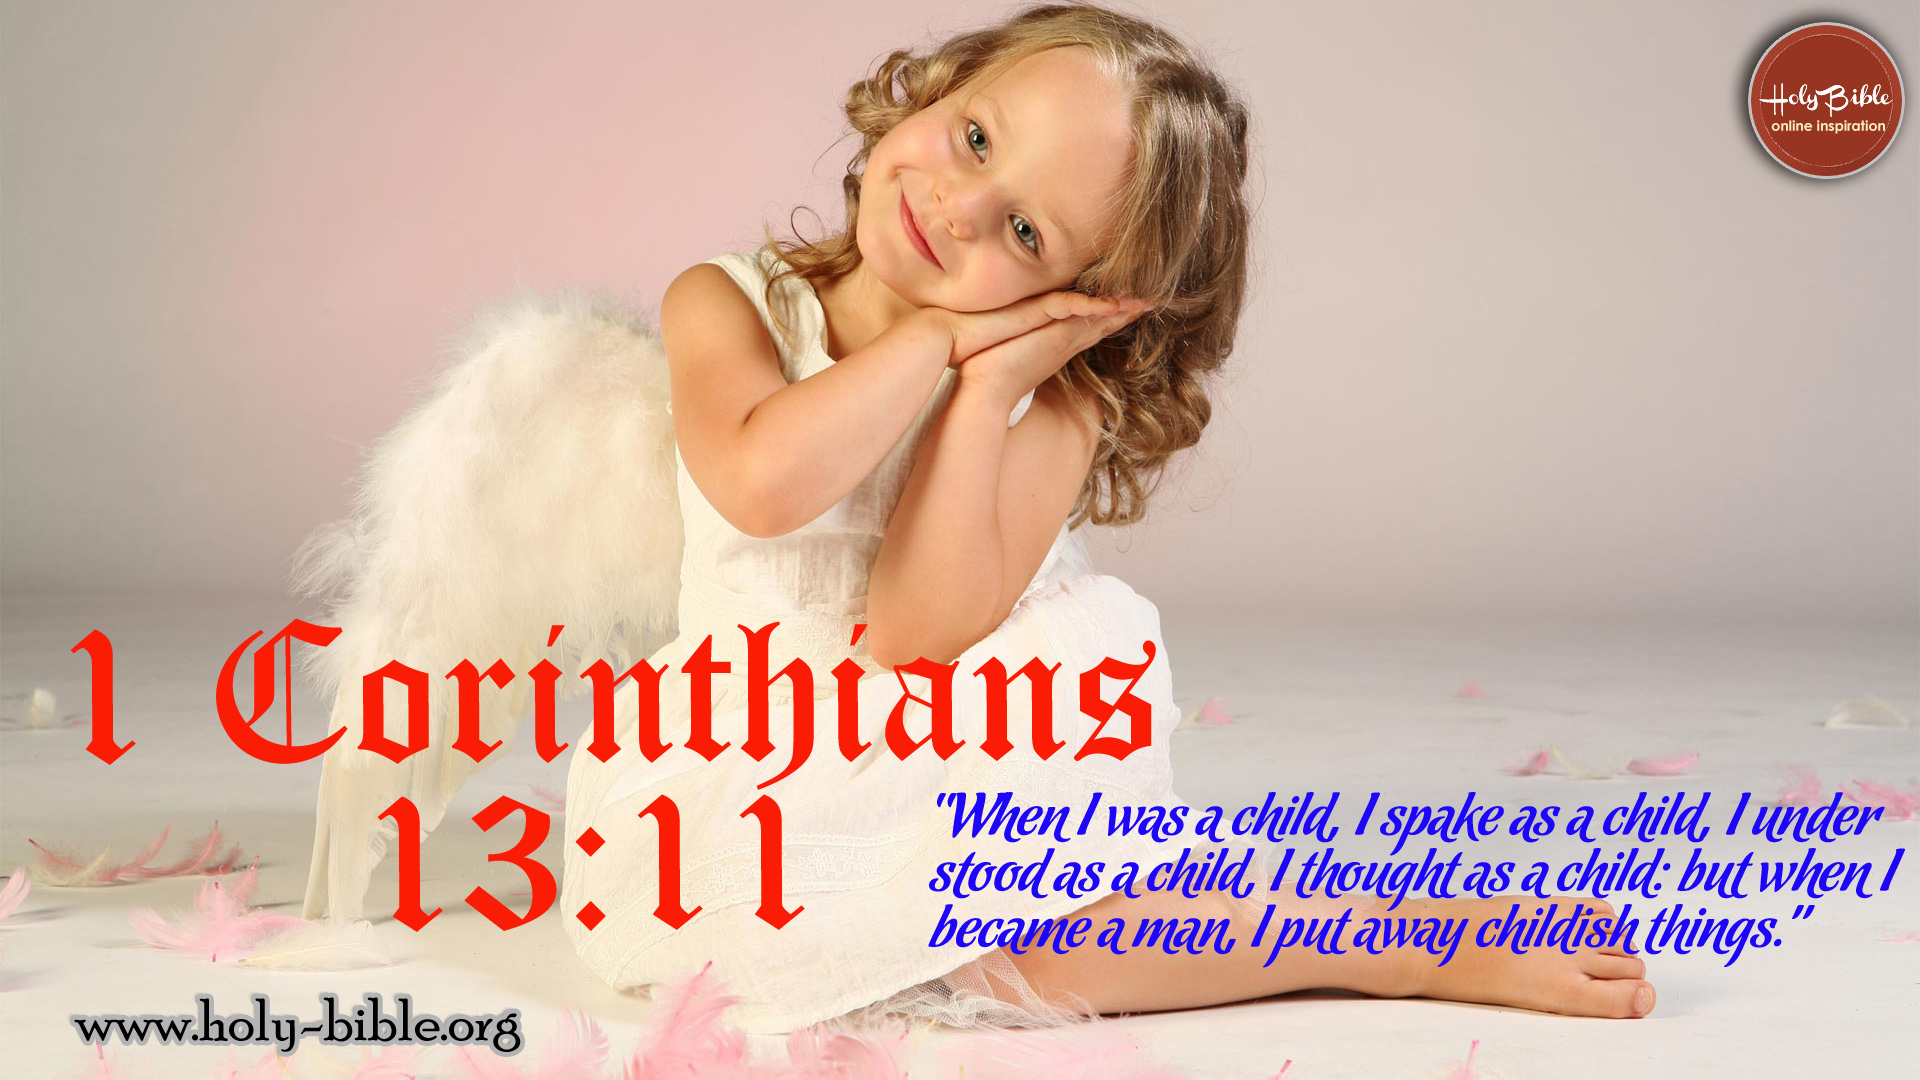 Bible Verse of the day - 1 Corinthians 13:11